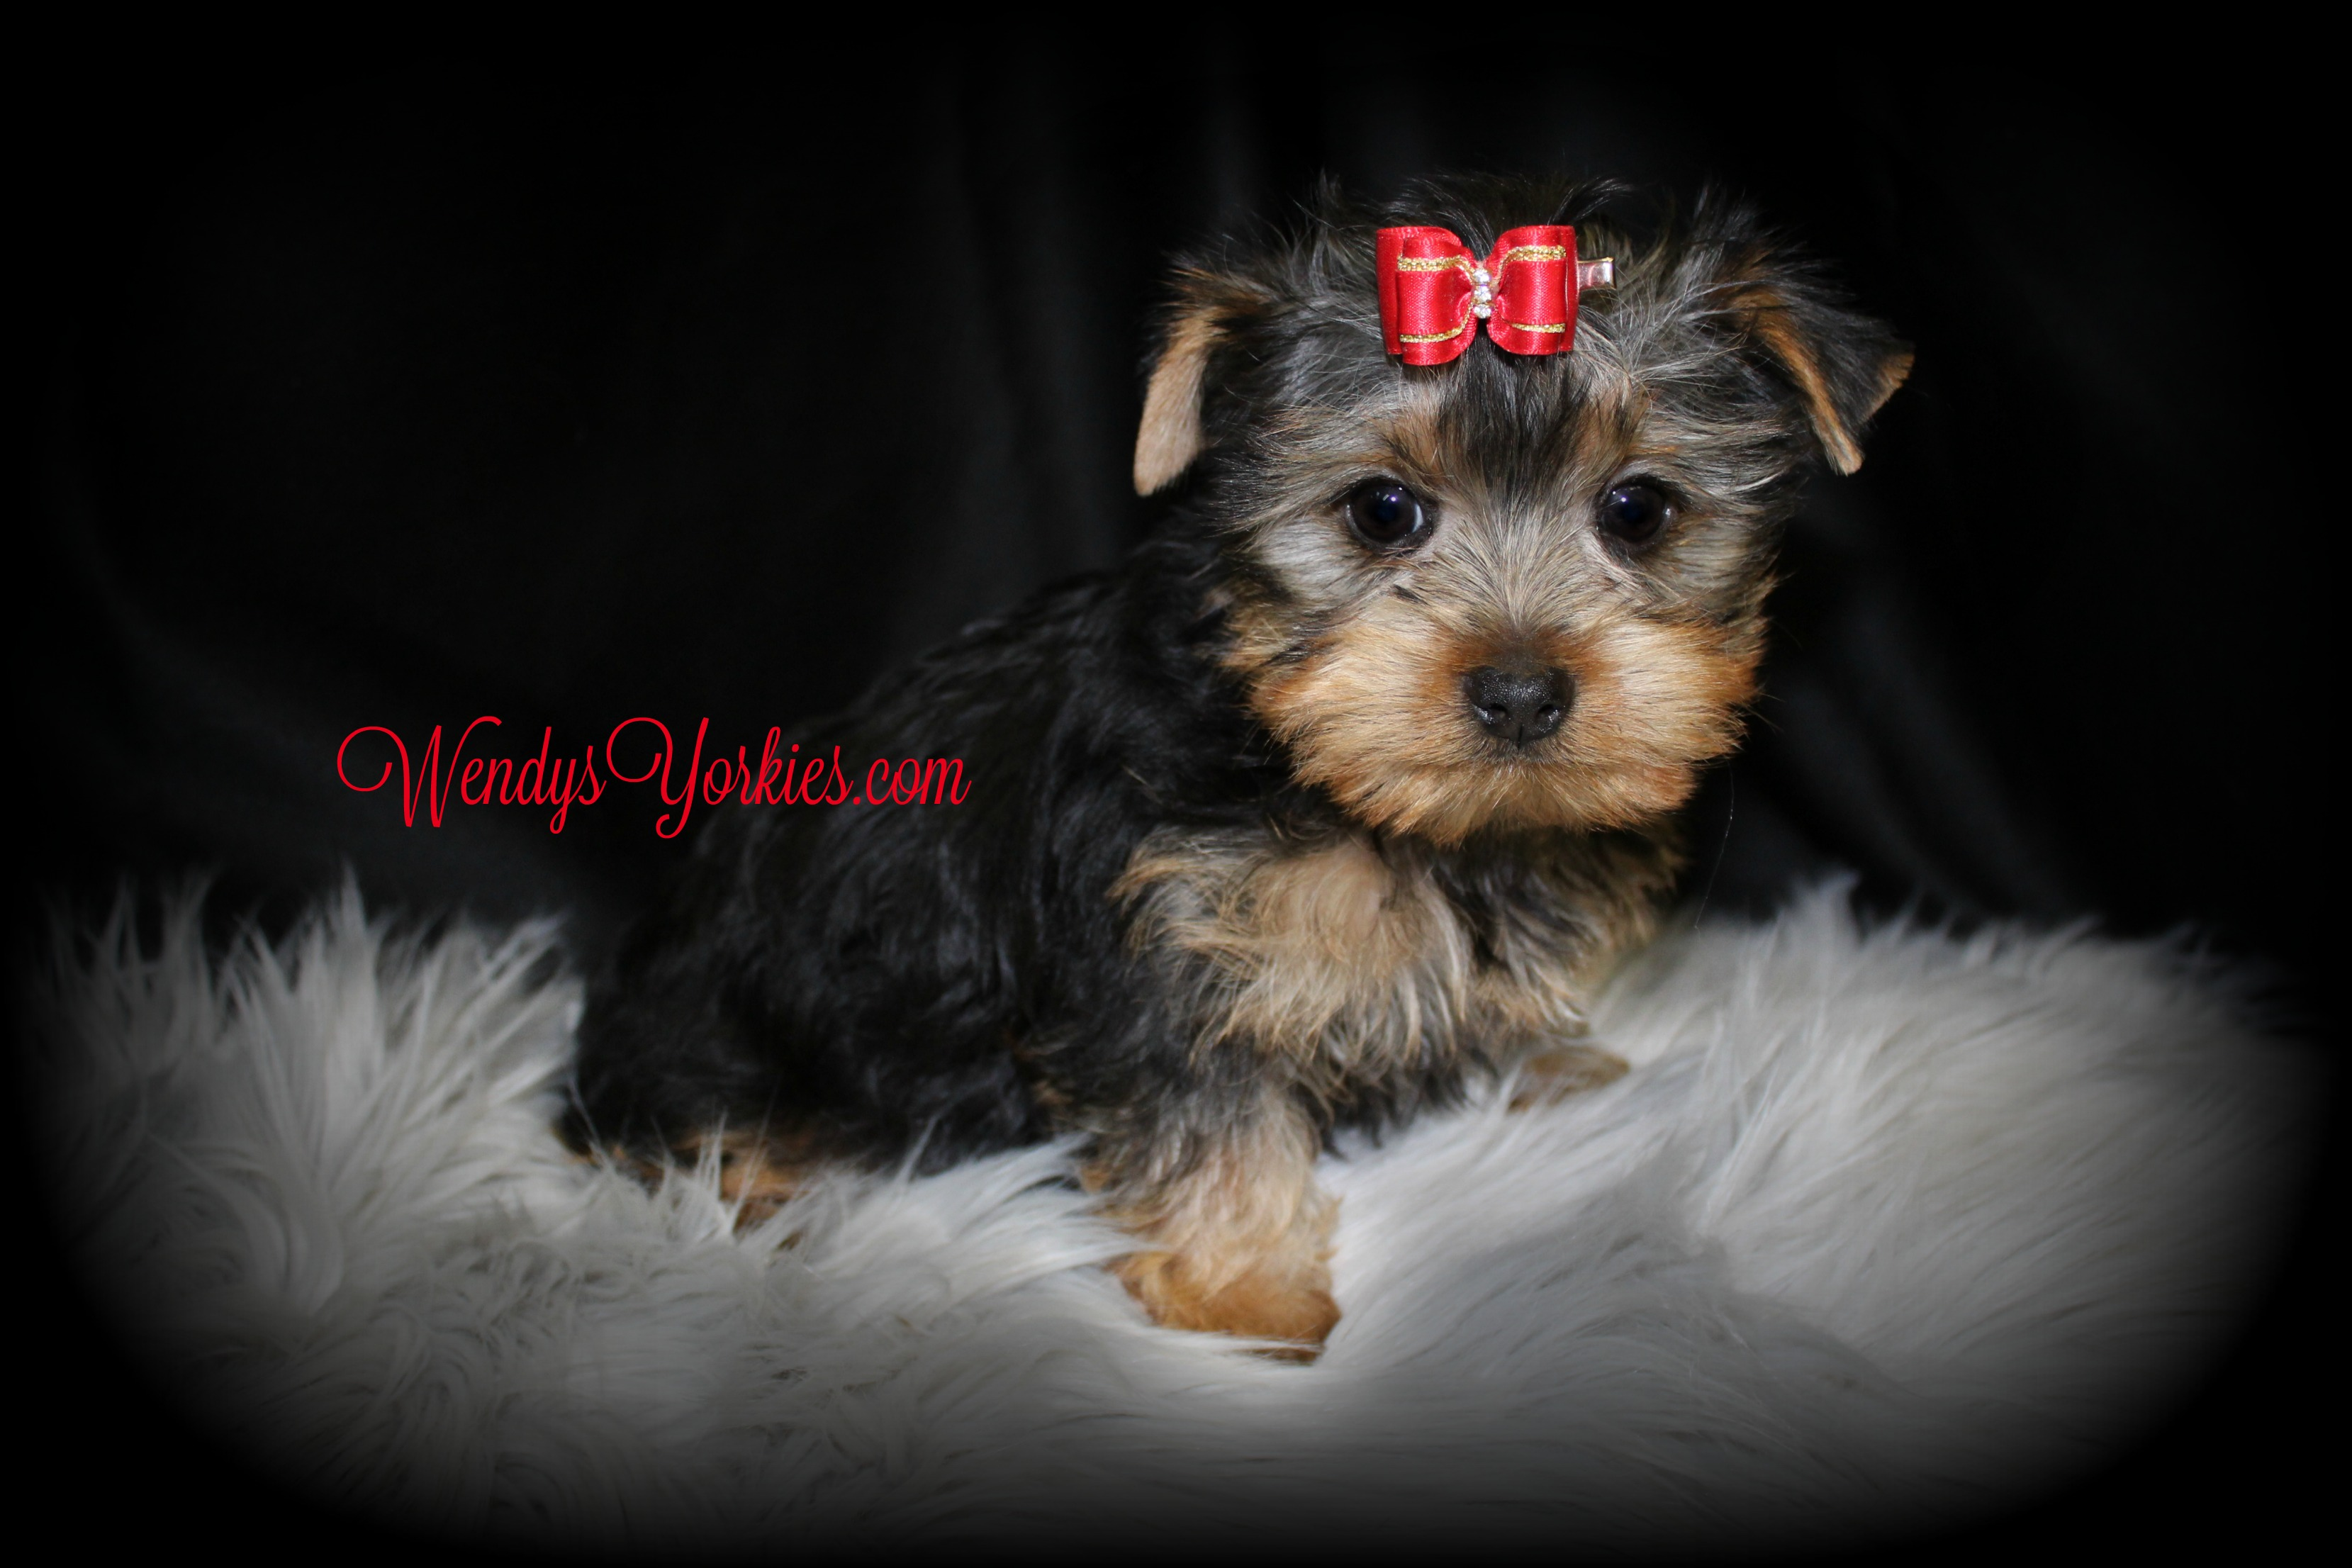 TEacup Male Yorkie puppy for sale, WendysYorkies.com, Ladys Lacy m2